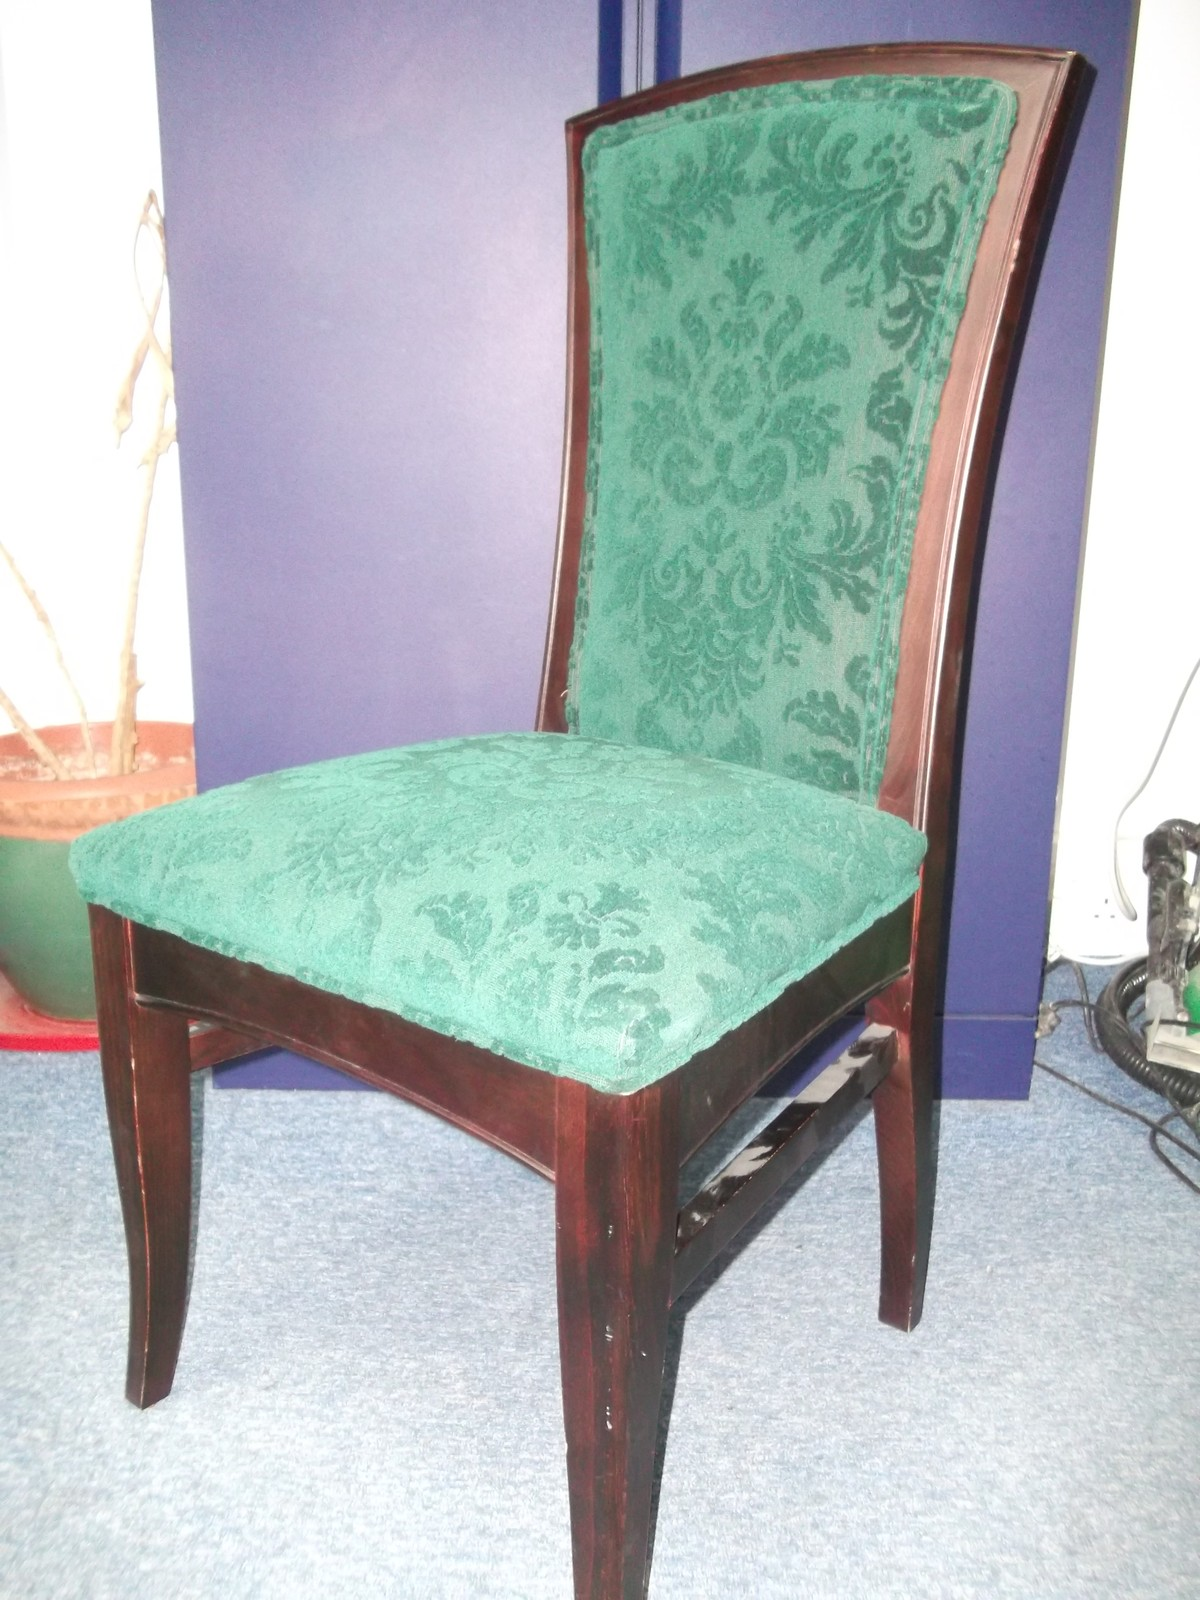 green dining chairs uk shabby chic office chair slipcovers secondhand and tables restaurant 8x